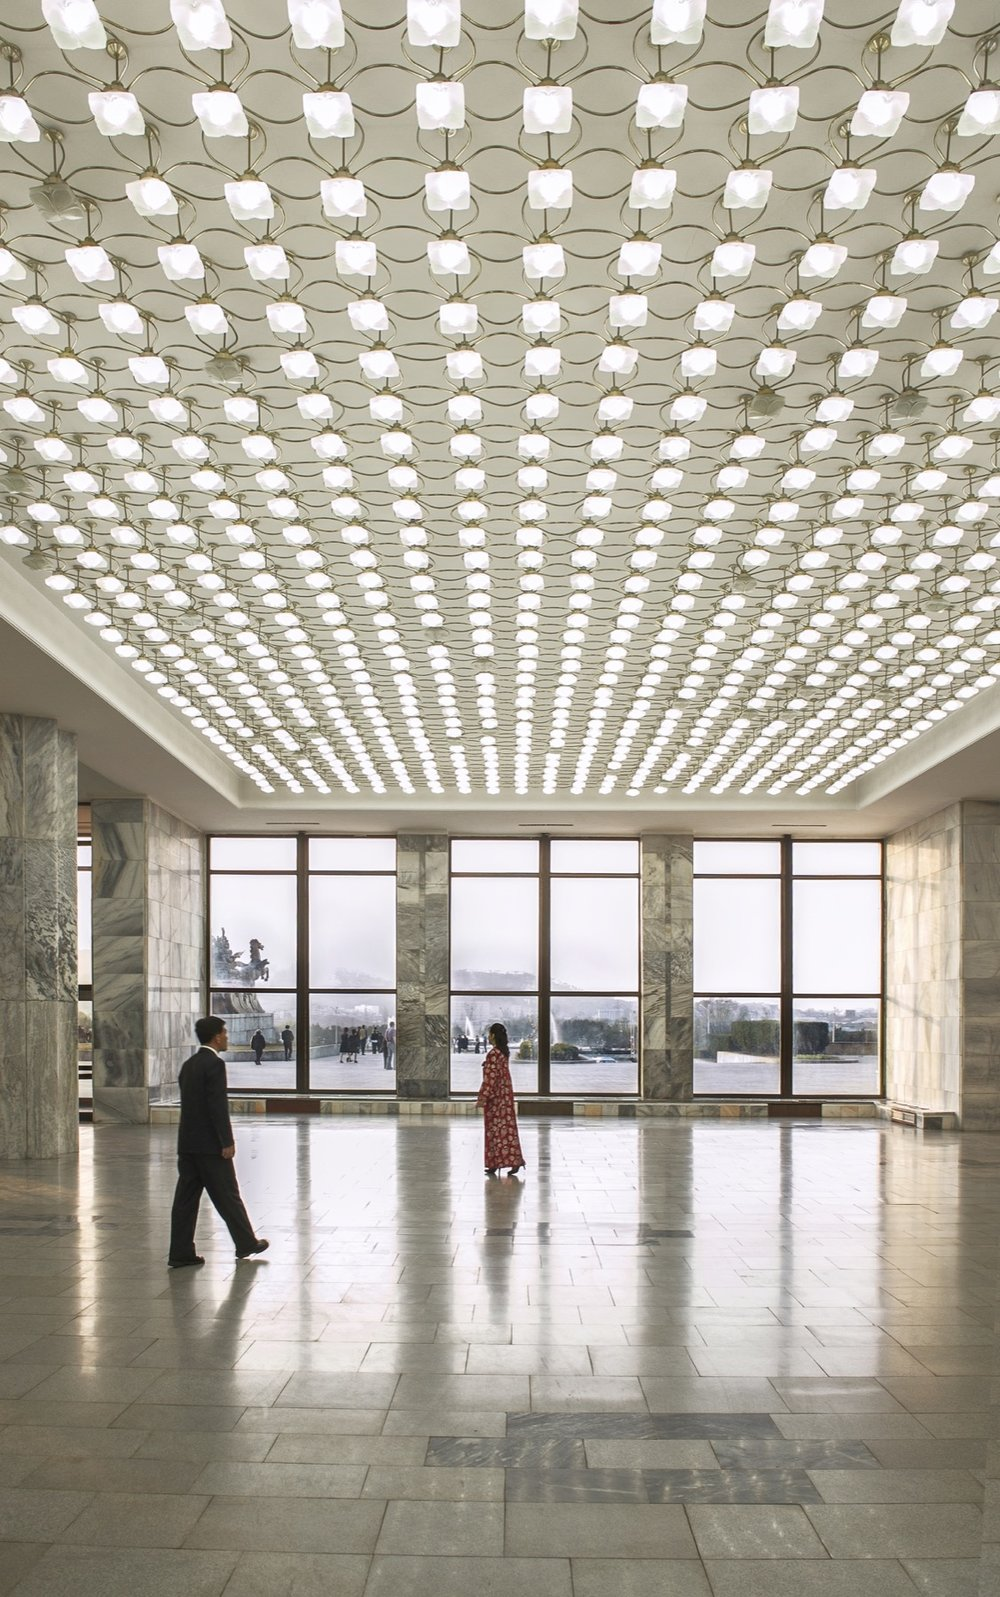 Lobby, North Korea Architecture of Propaganda - Wolf Nitch Photography